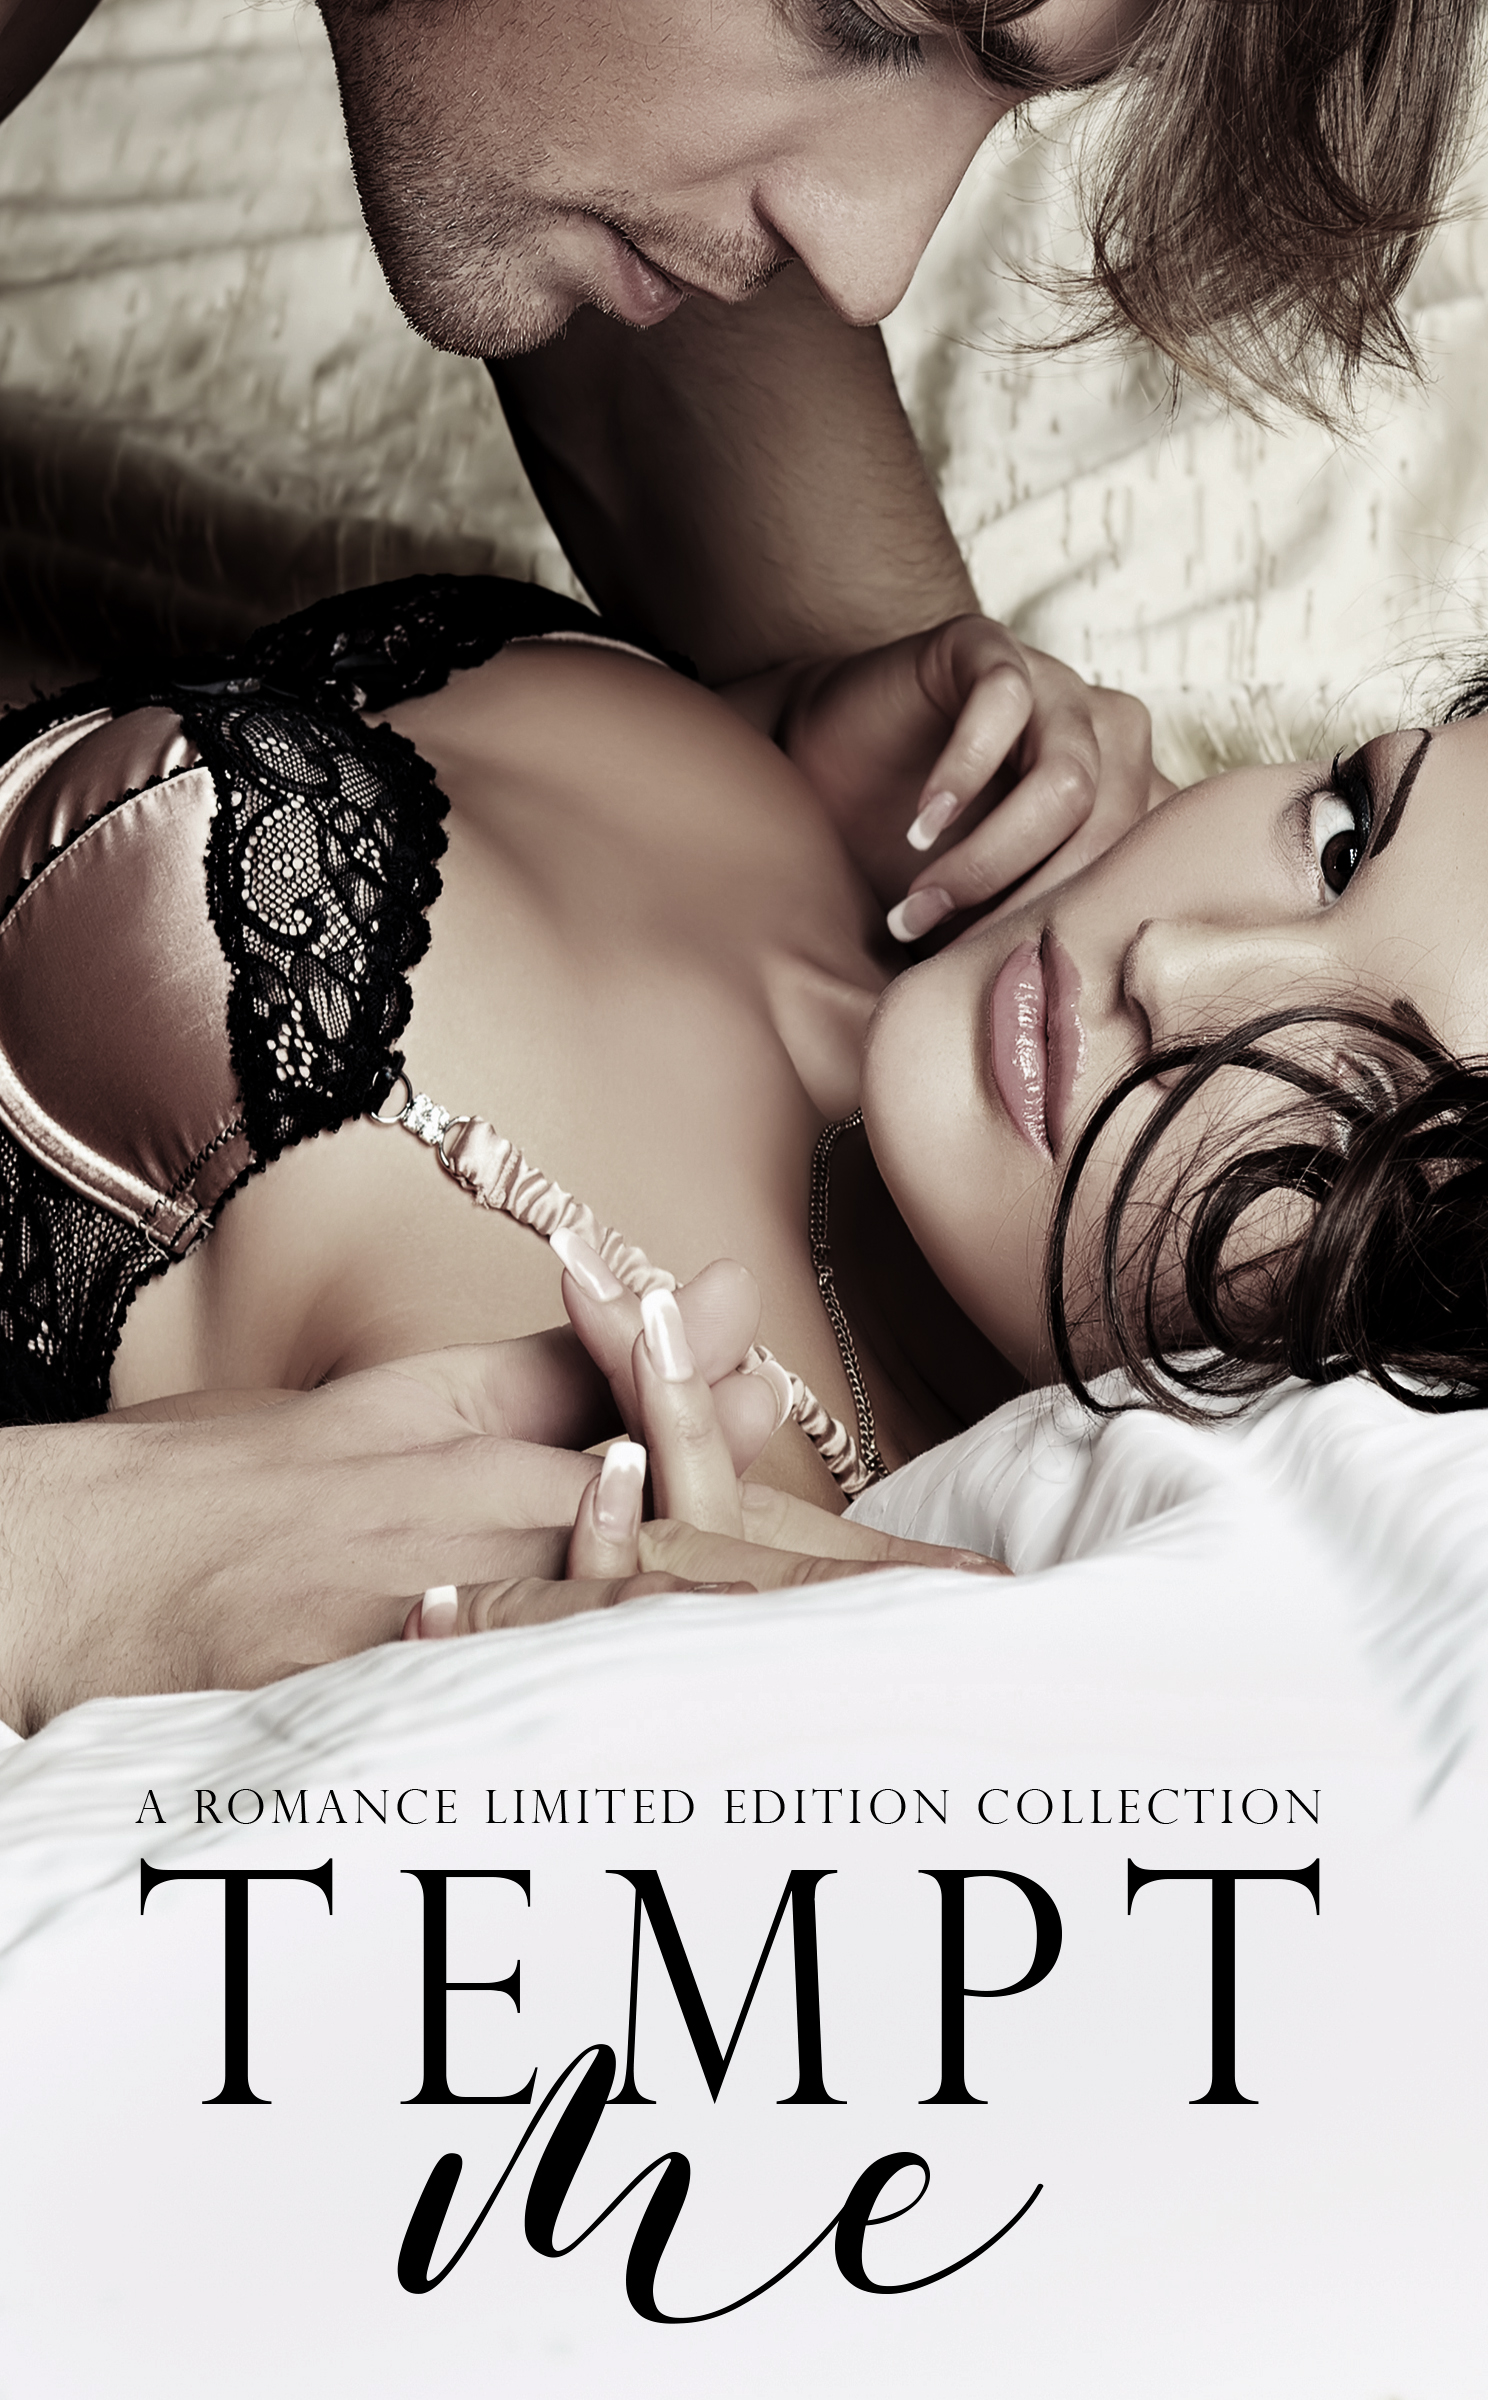 Tempt Me: A Romance Limited Edition Collection